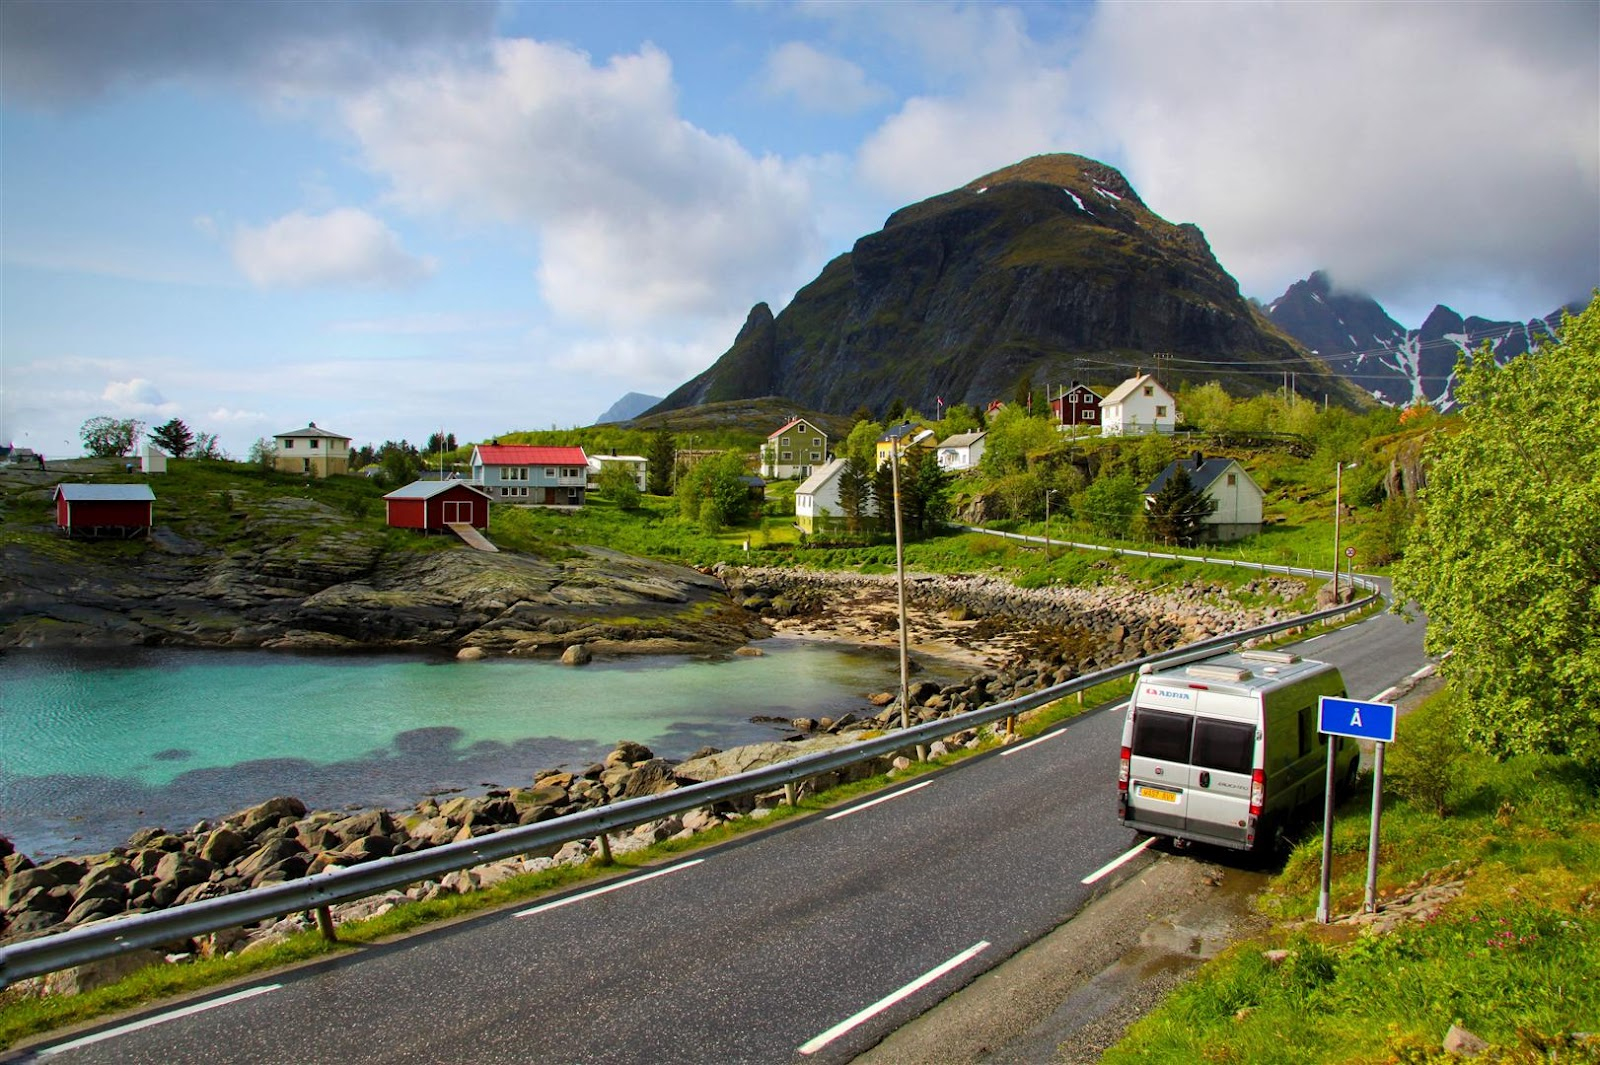 2.RVing through Europe – the best destinations